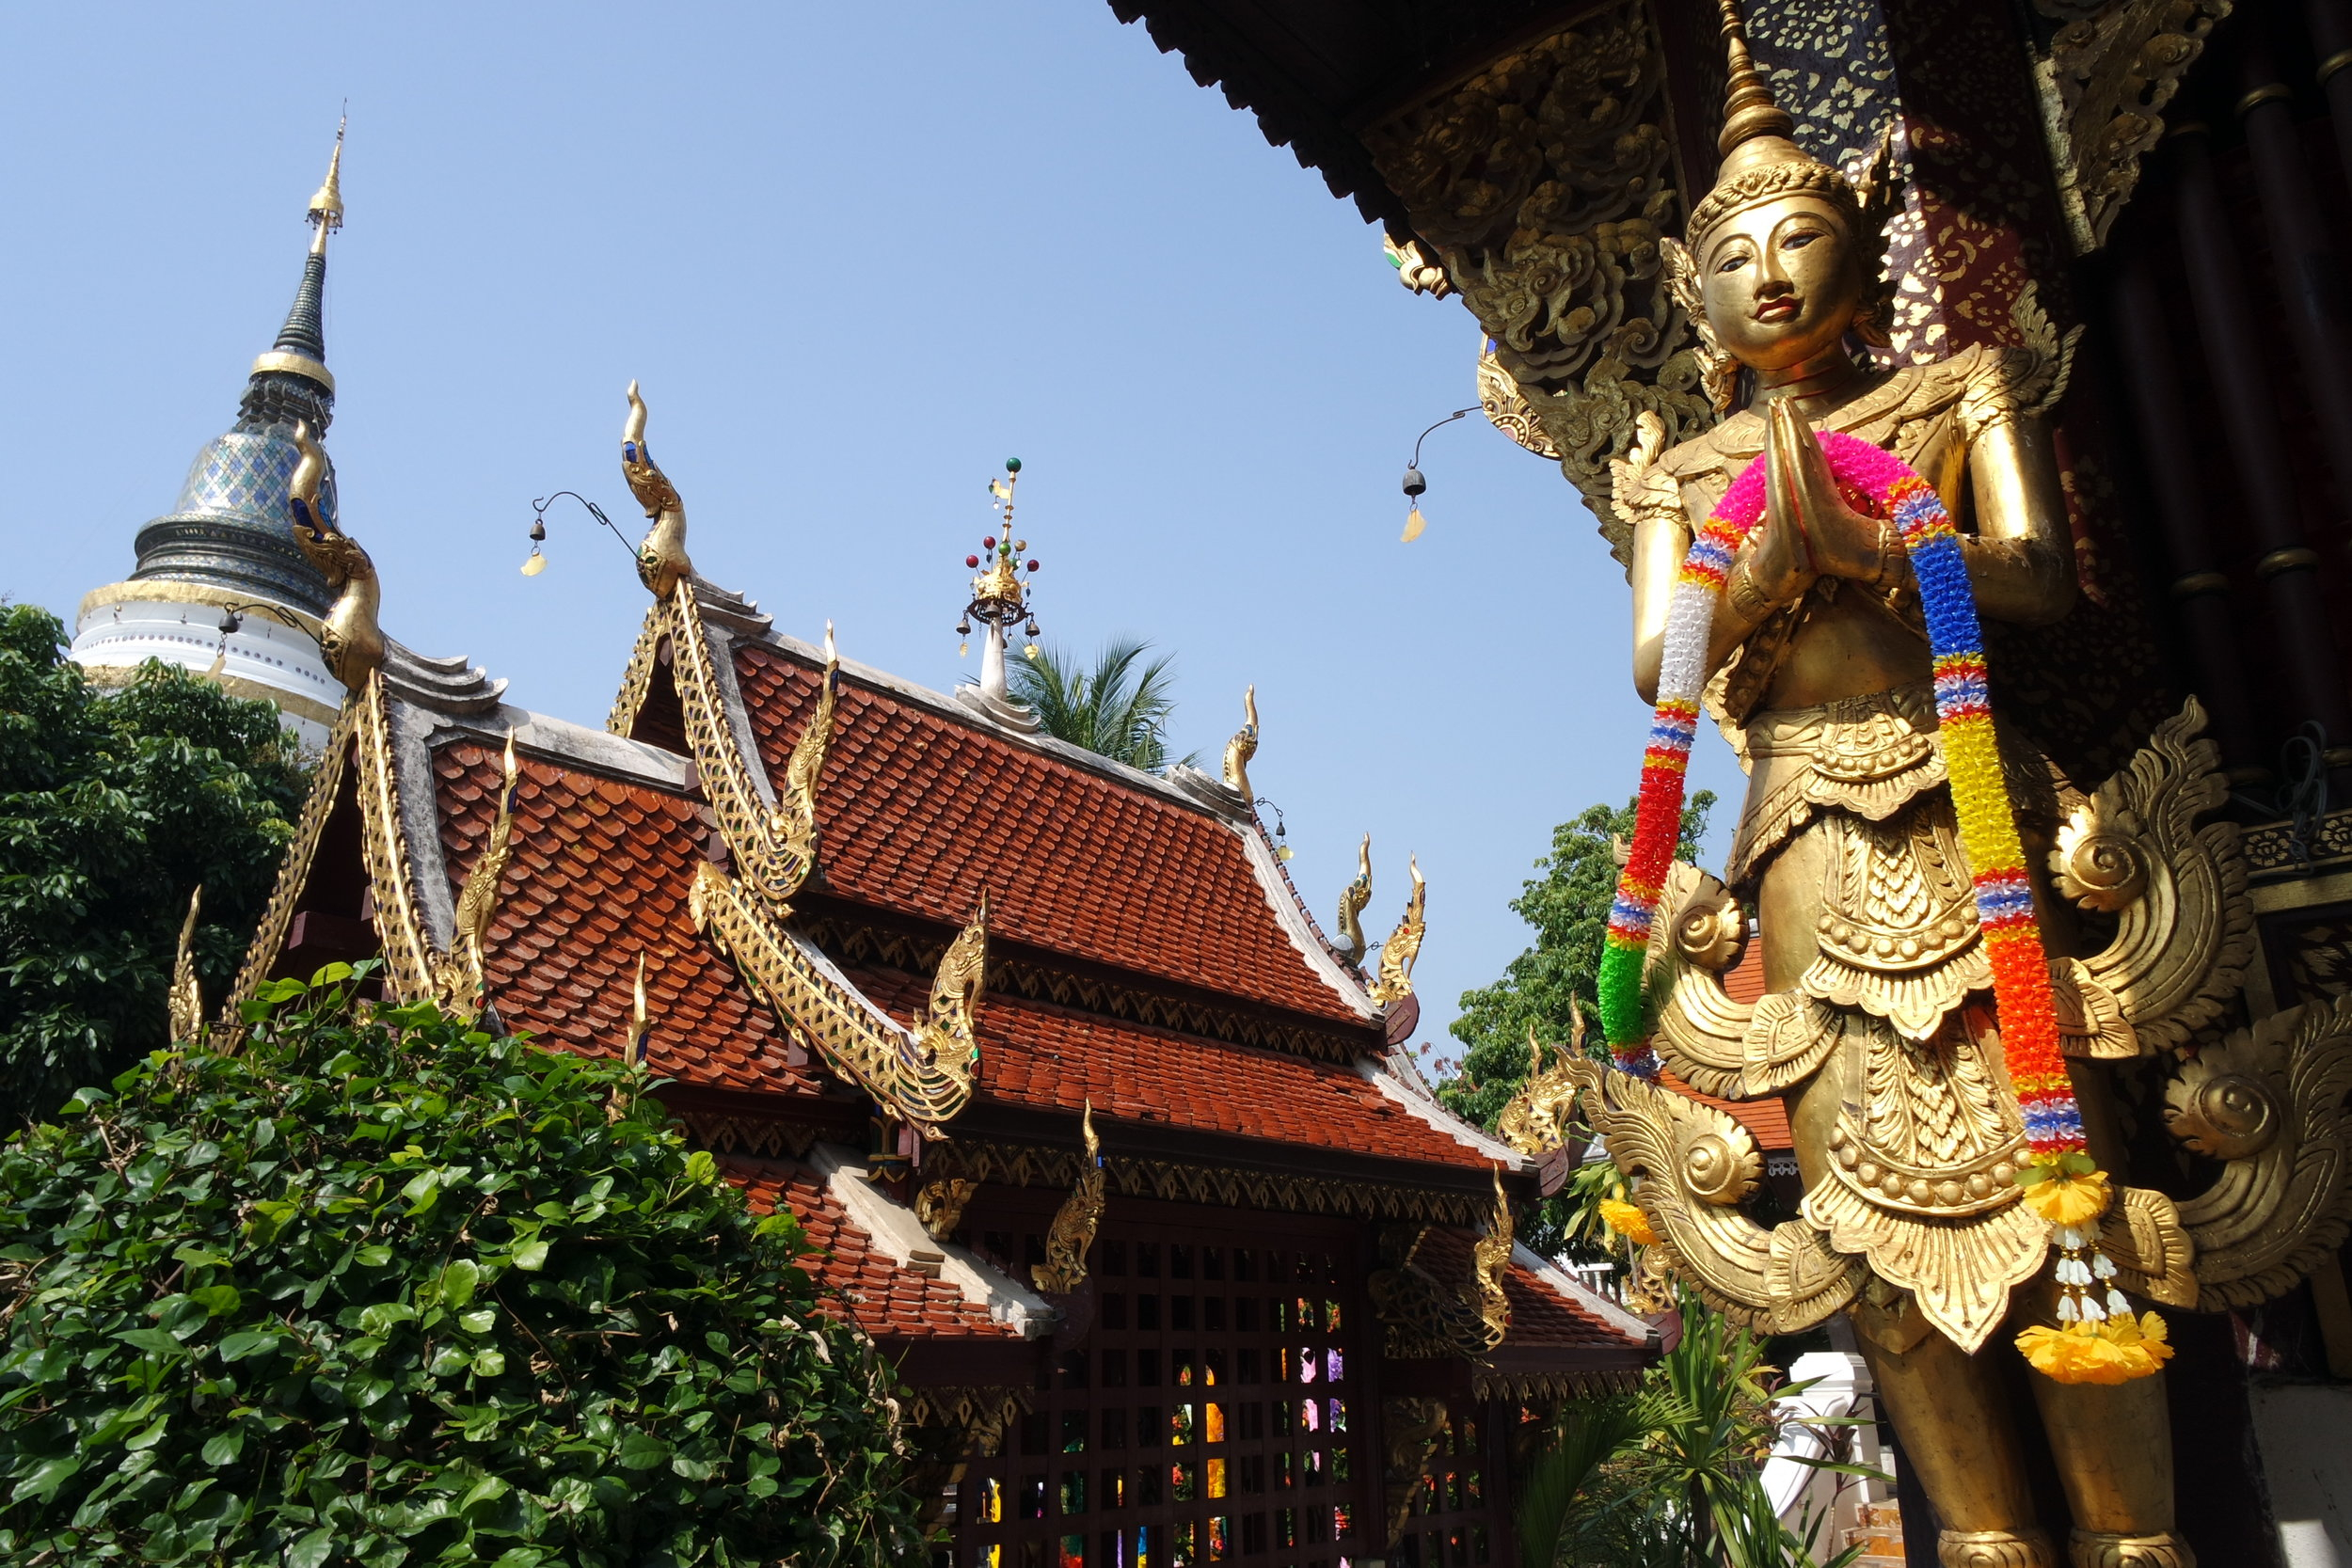 The entire complex of Wat Ket Karam is gorgeous and fun to explore